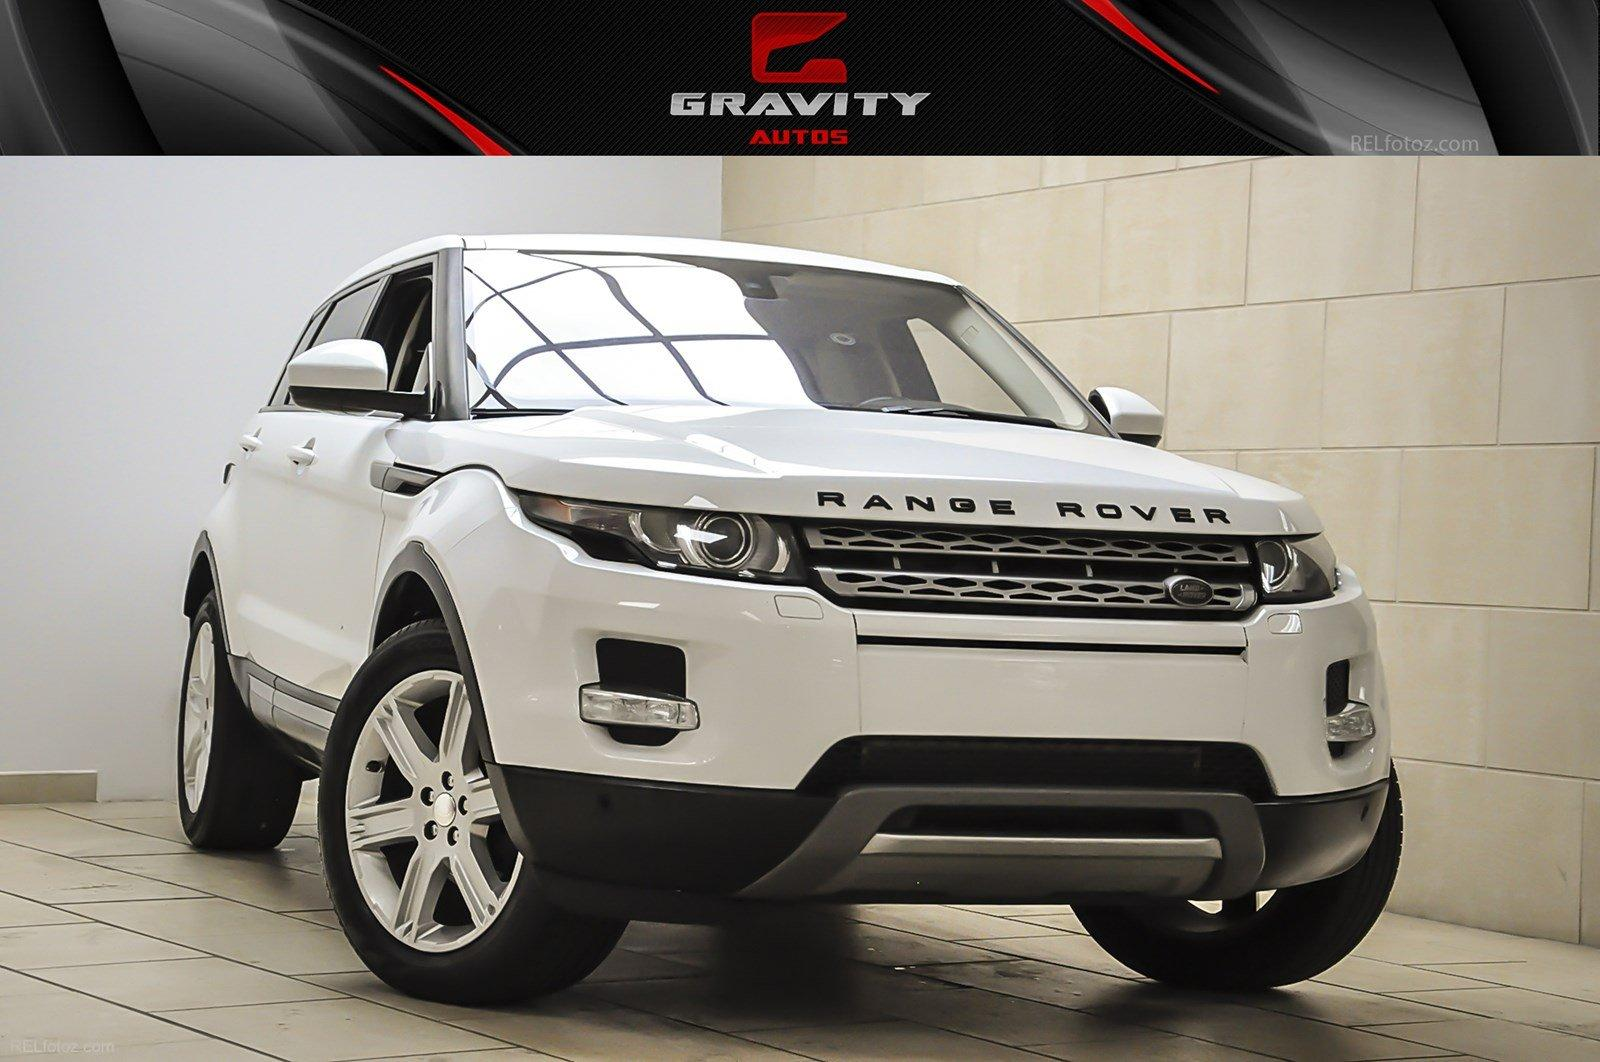 2014 land rover range rover evoque pure plus stock 880877 for sale near sandy springs ga ga. Black Bedroom Furniture Sets. Home Design Ideas